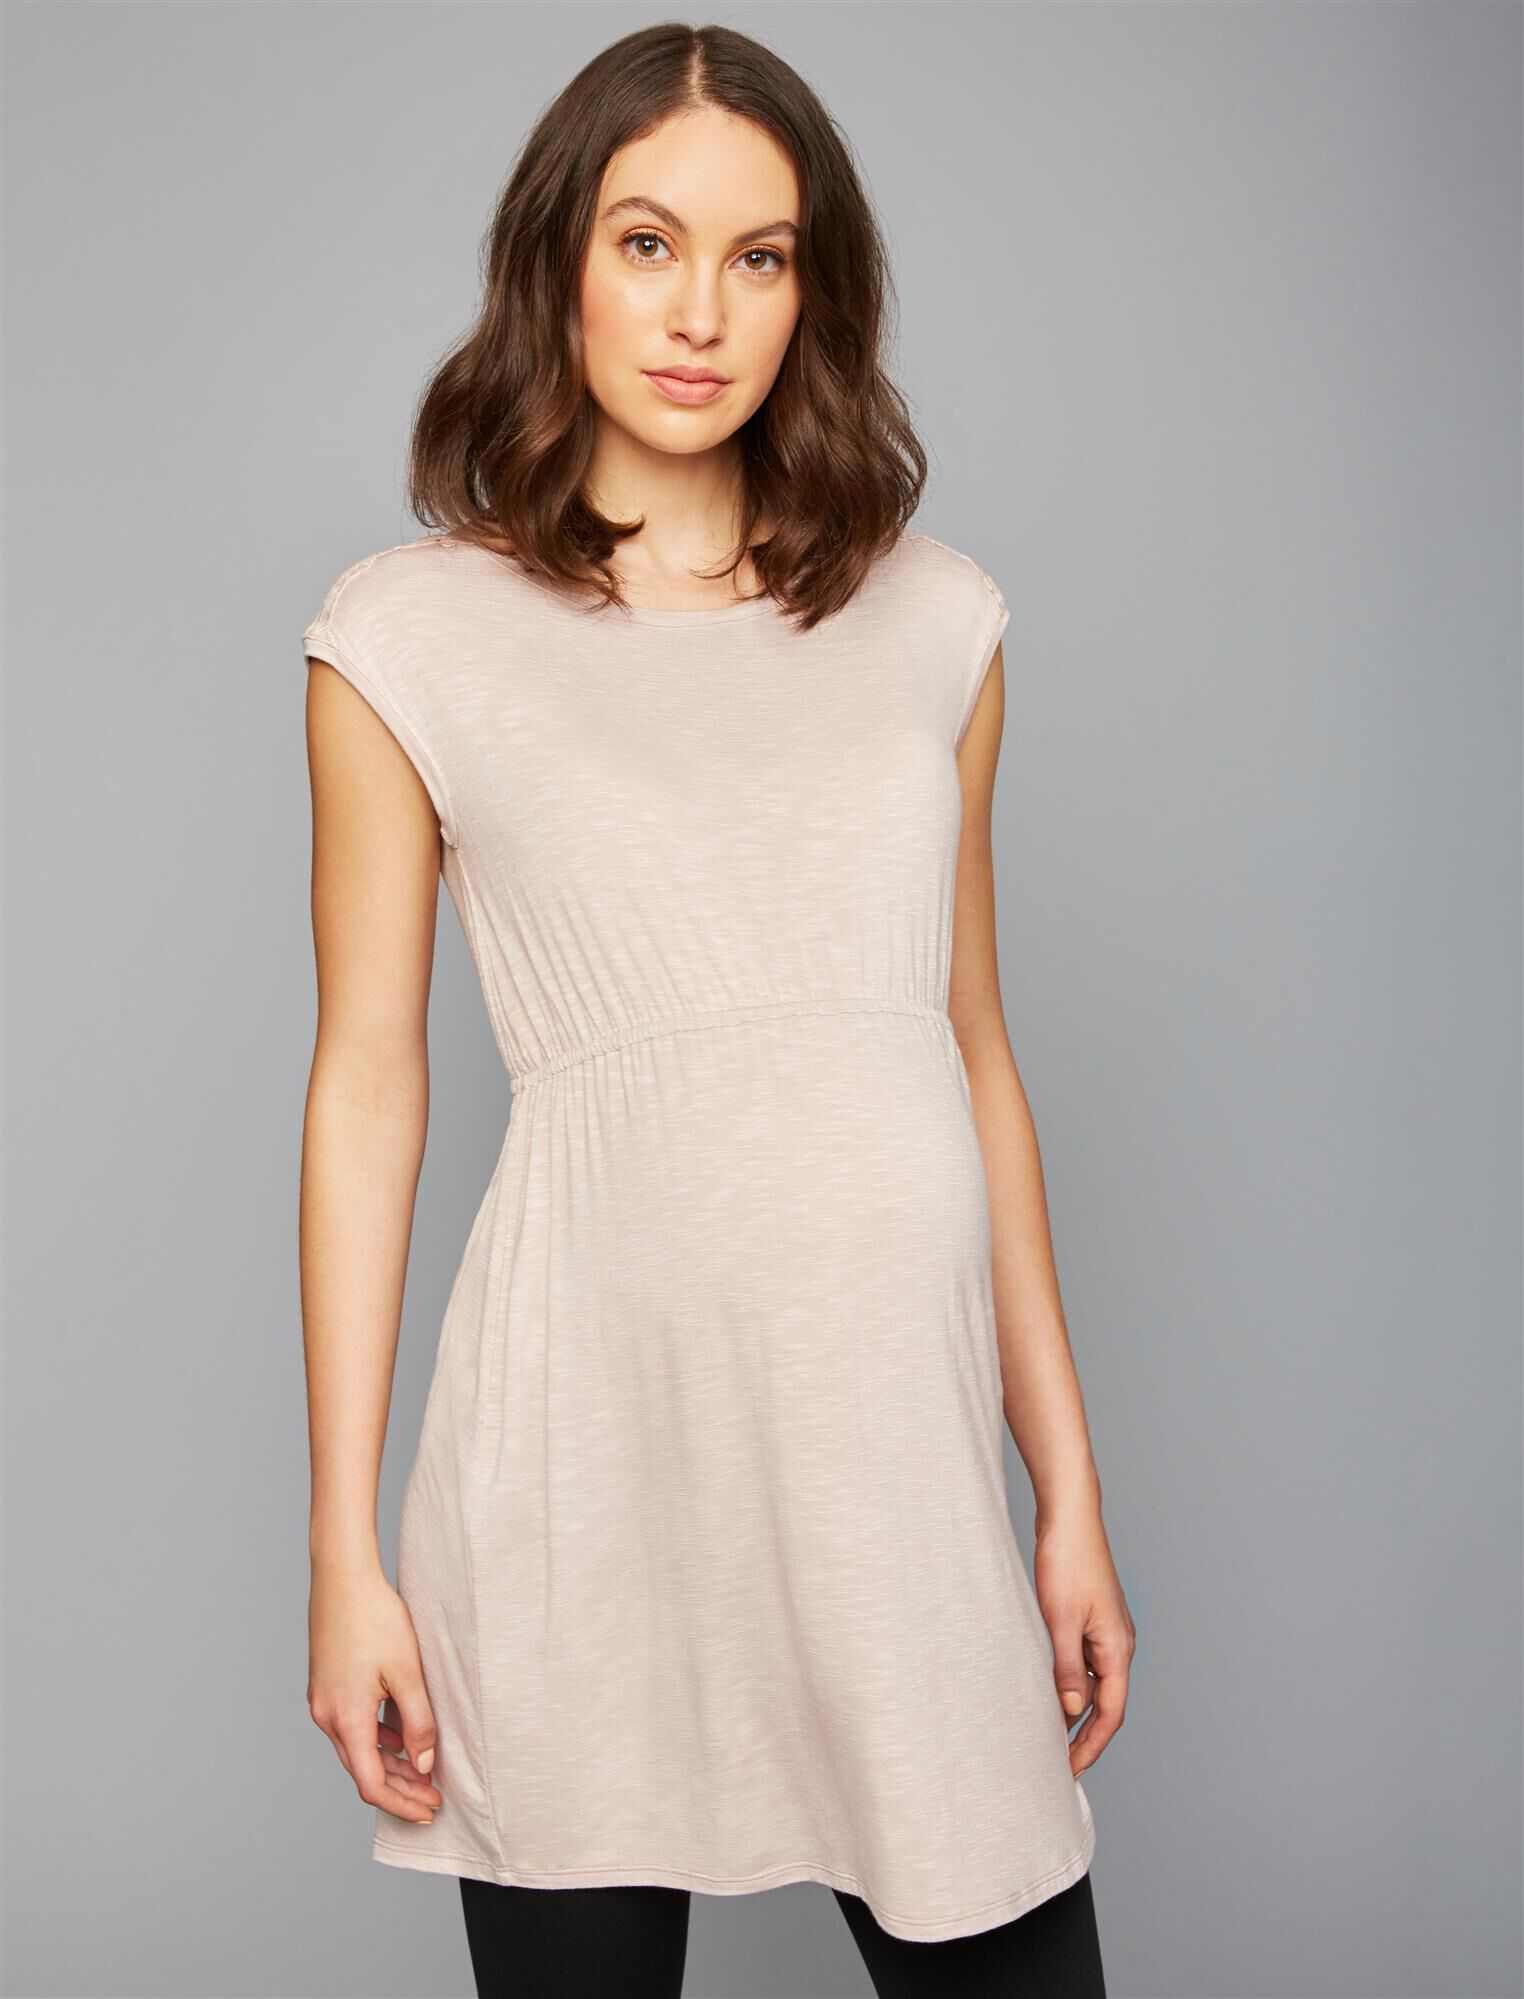 Super Soft Maternity Tunic